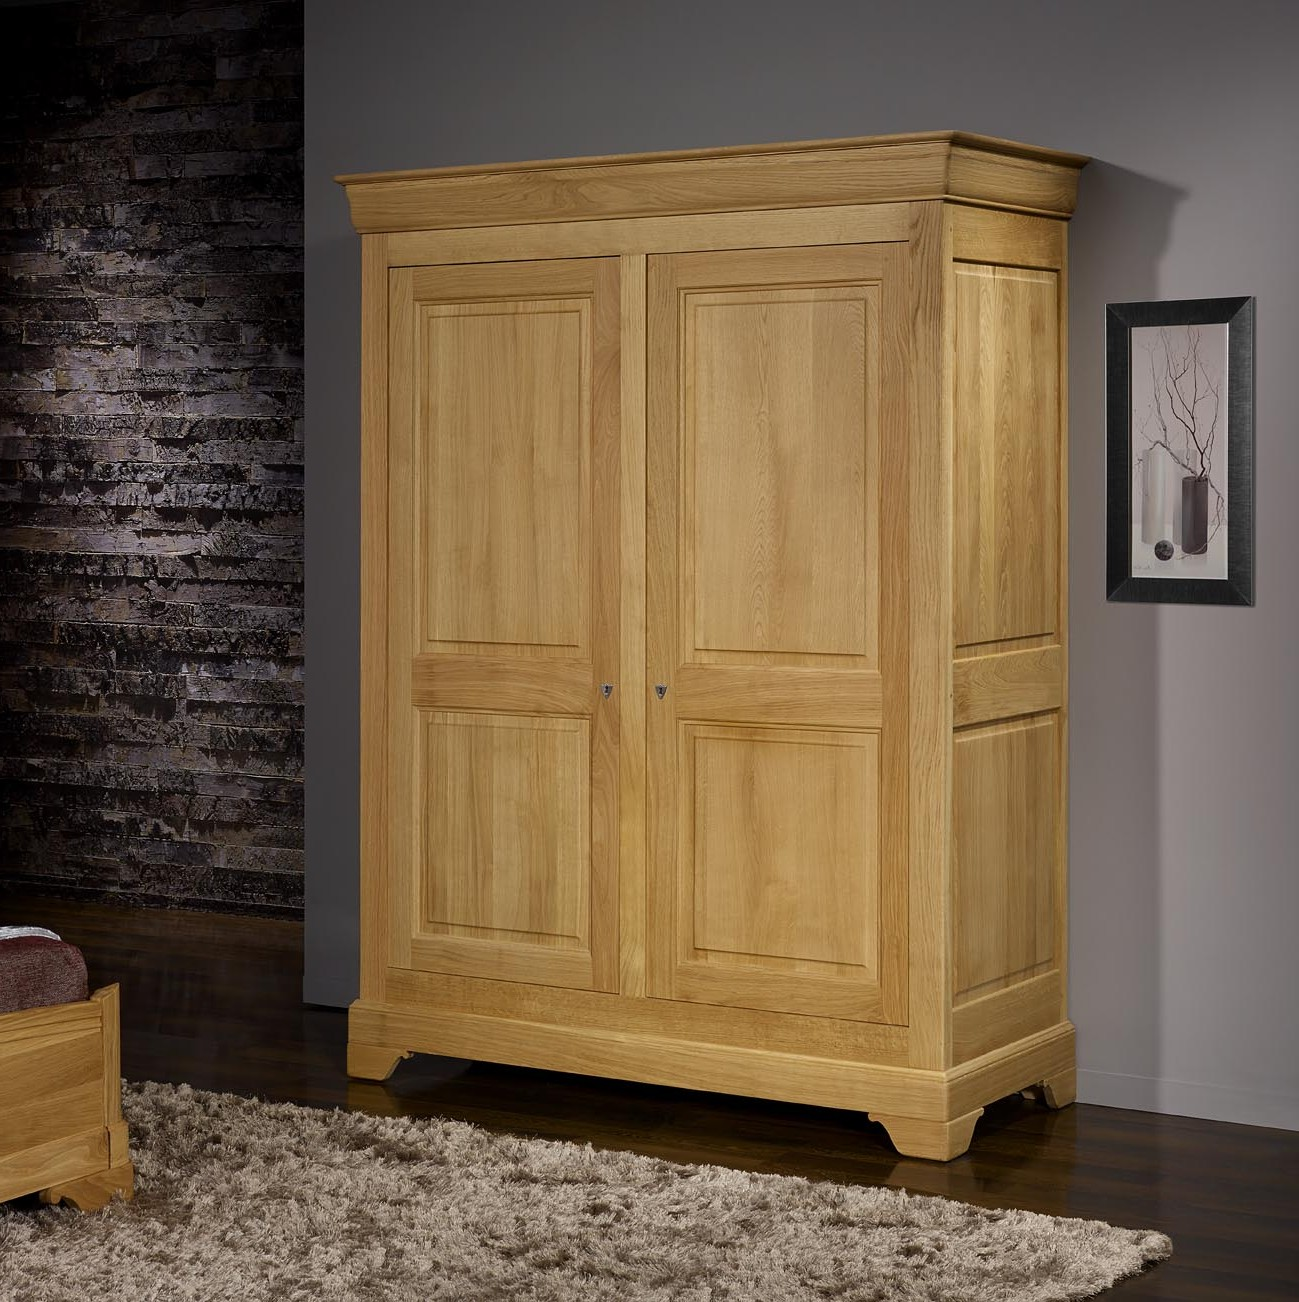 armoire bois brut portes coulissantes armoire id es de d coration de maison 1plxk64nwm. Black Bedroom Furniture Sets. Home Design Ideas